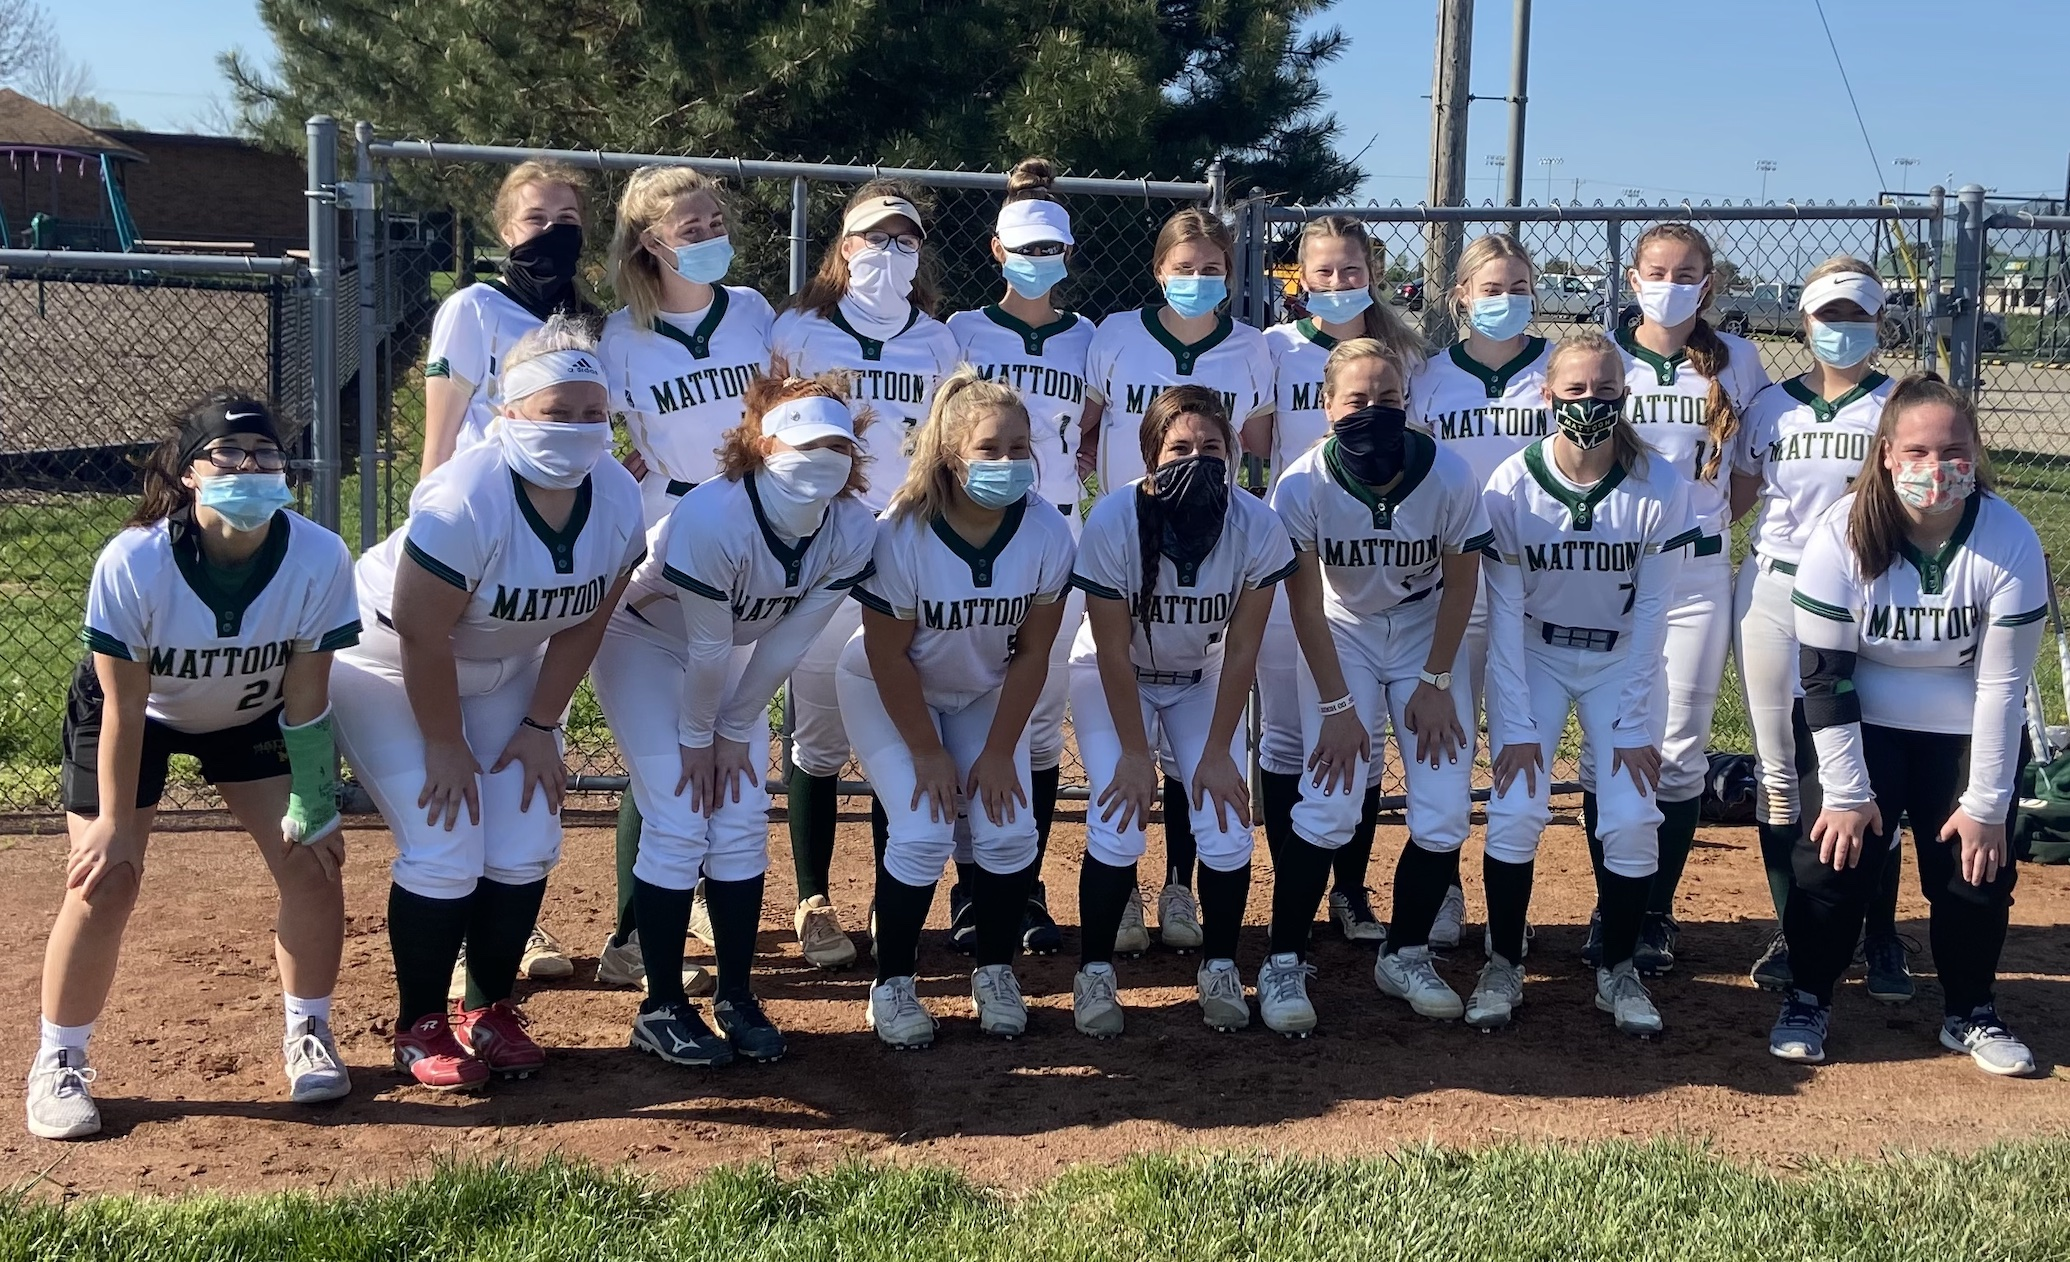 Mattoon softball seeks to build on momentum vs. Taylorville